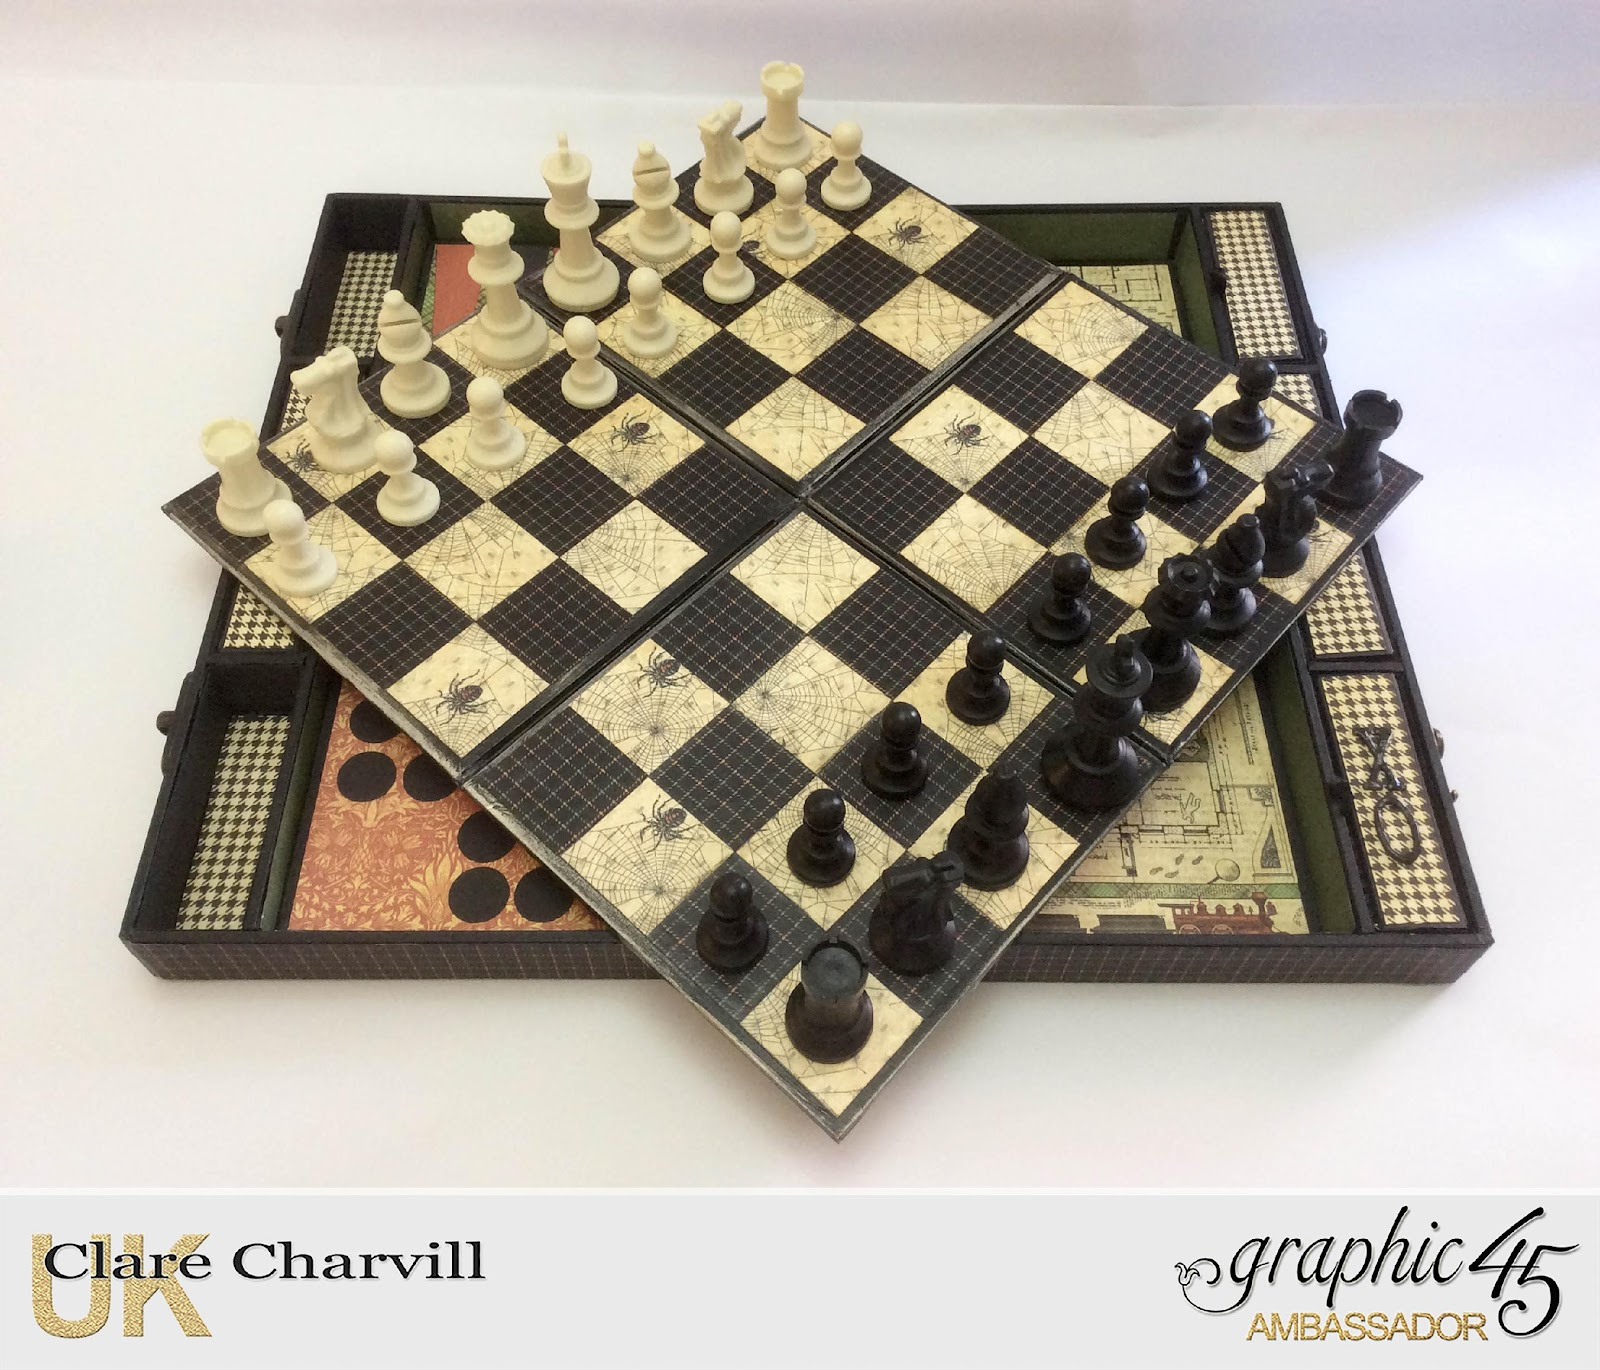 /Users/clare/Pictures/Photos Library.photoslibrary/Masters/2017/07/10/20170710-063017/MDCOG Chess Board Clare Charvill Graphic 45.jpg